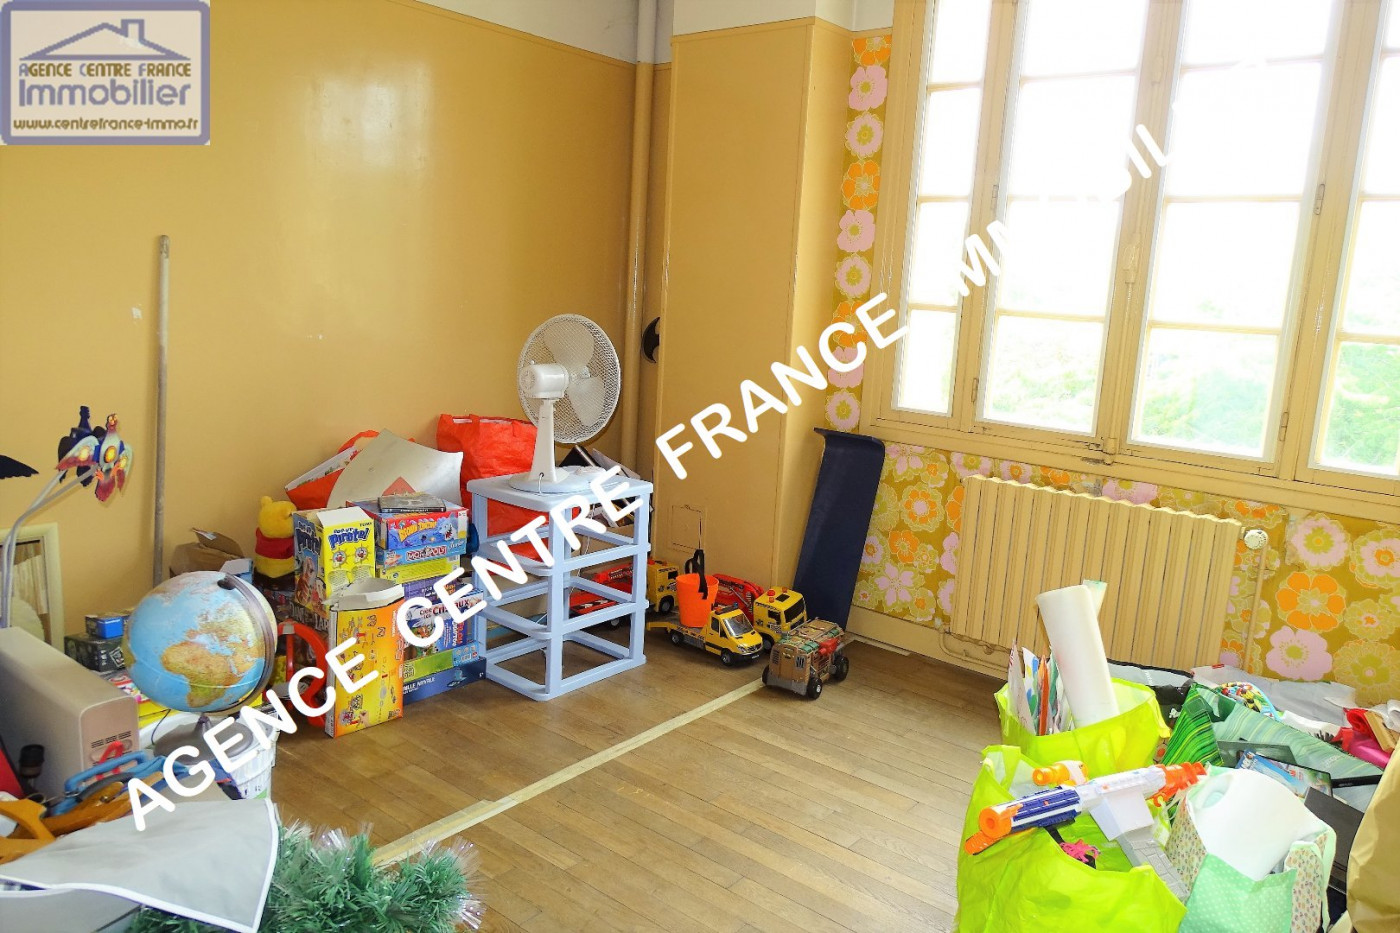 A vendre Bourges 030011115 Agence centre france immobilier